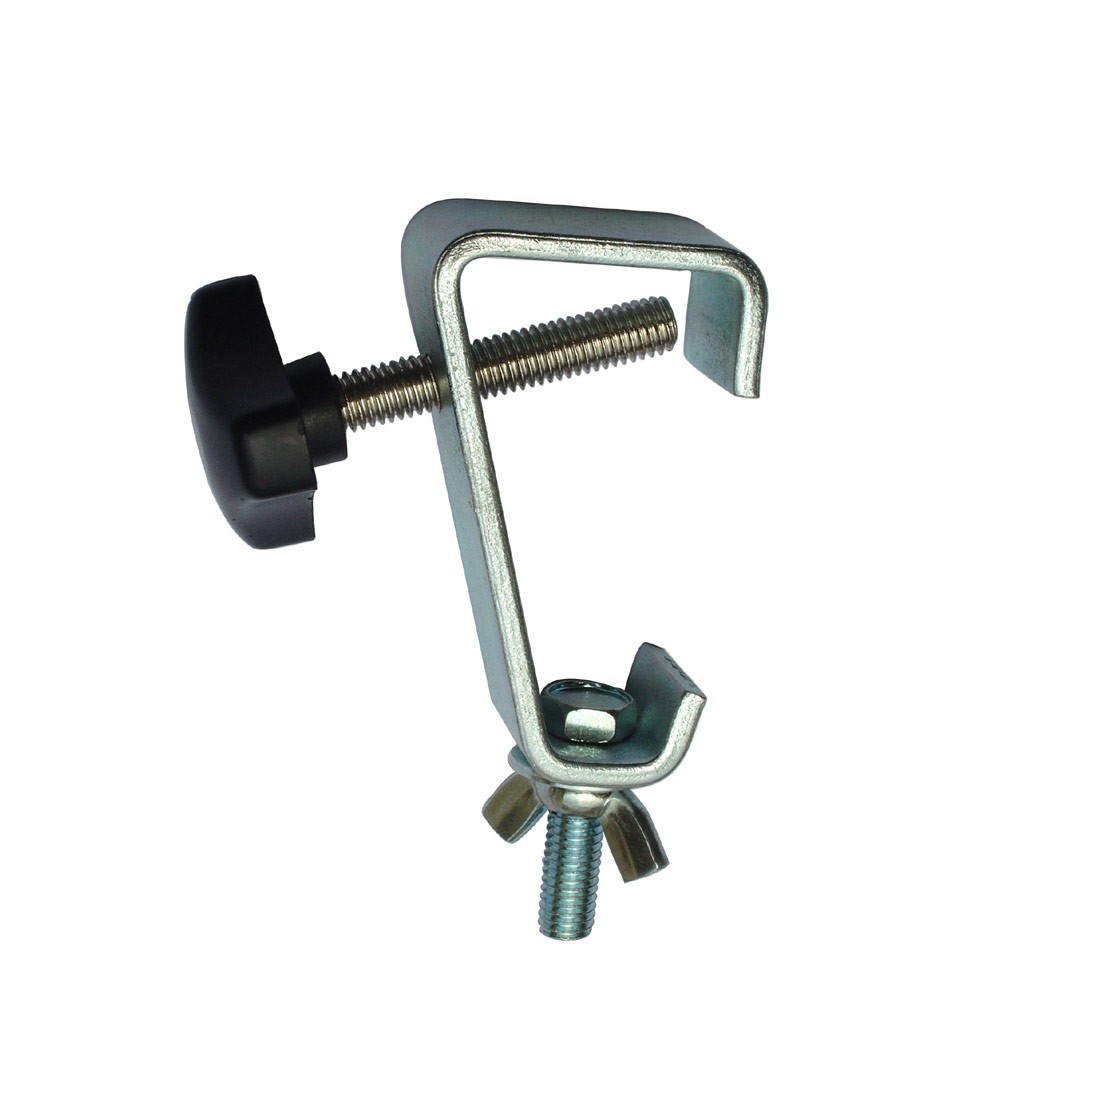 American Dj Light Bridge clamp - uchwyt do kratownic aluminiowych